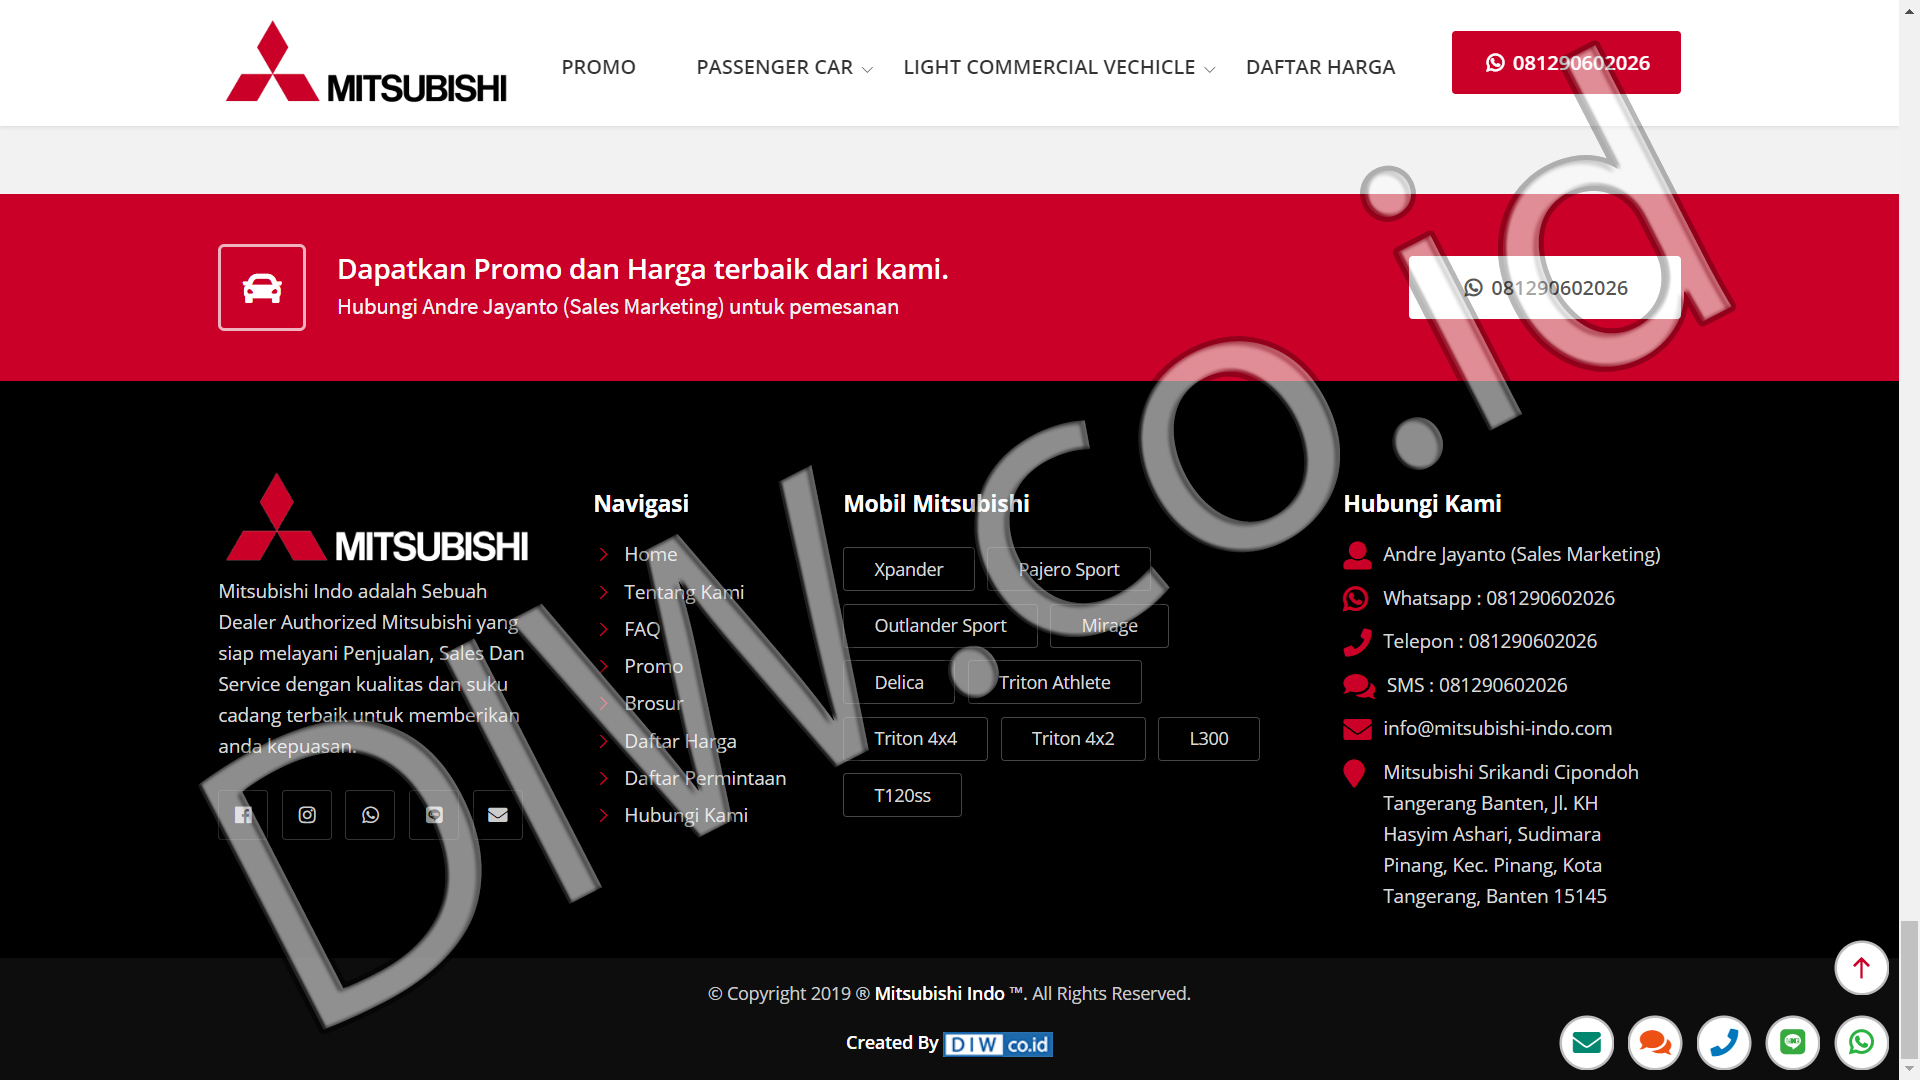 Portfolio 5 - Mitsubishi Indo - Andri Sunardi - Freelancer - Web Developer - CEO DIW.co.id